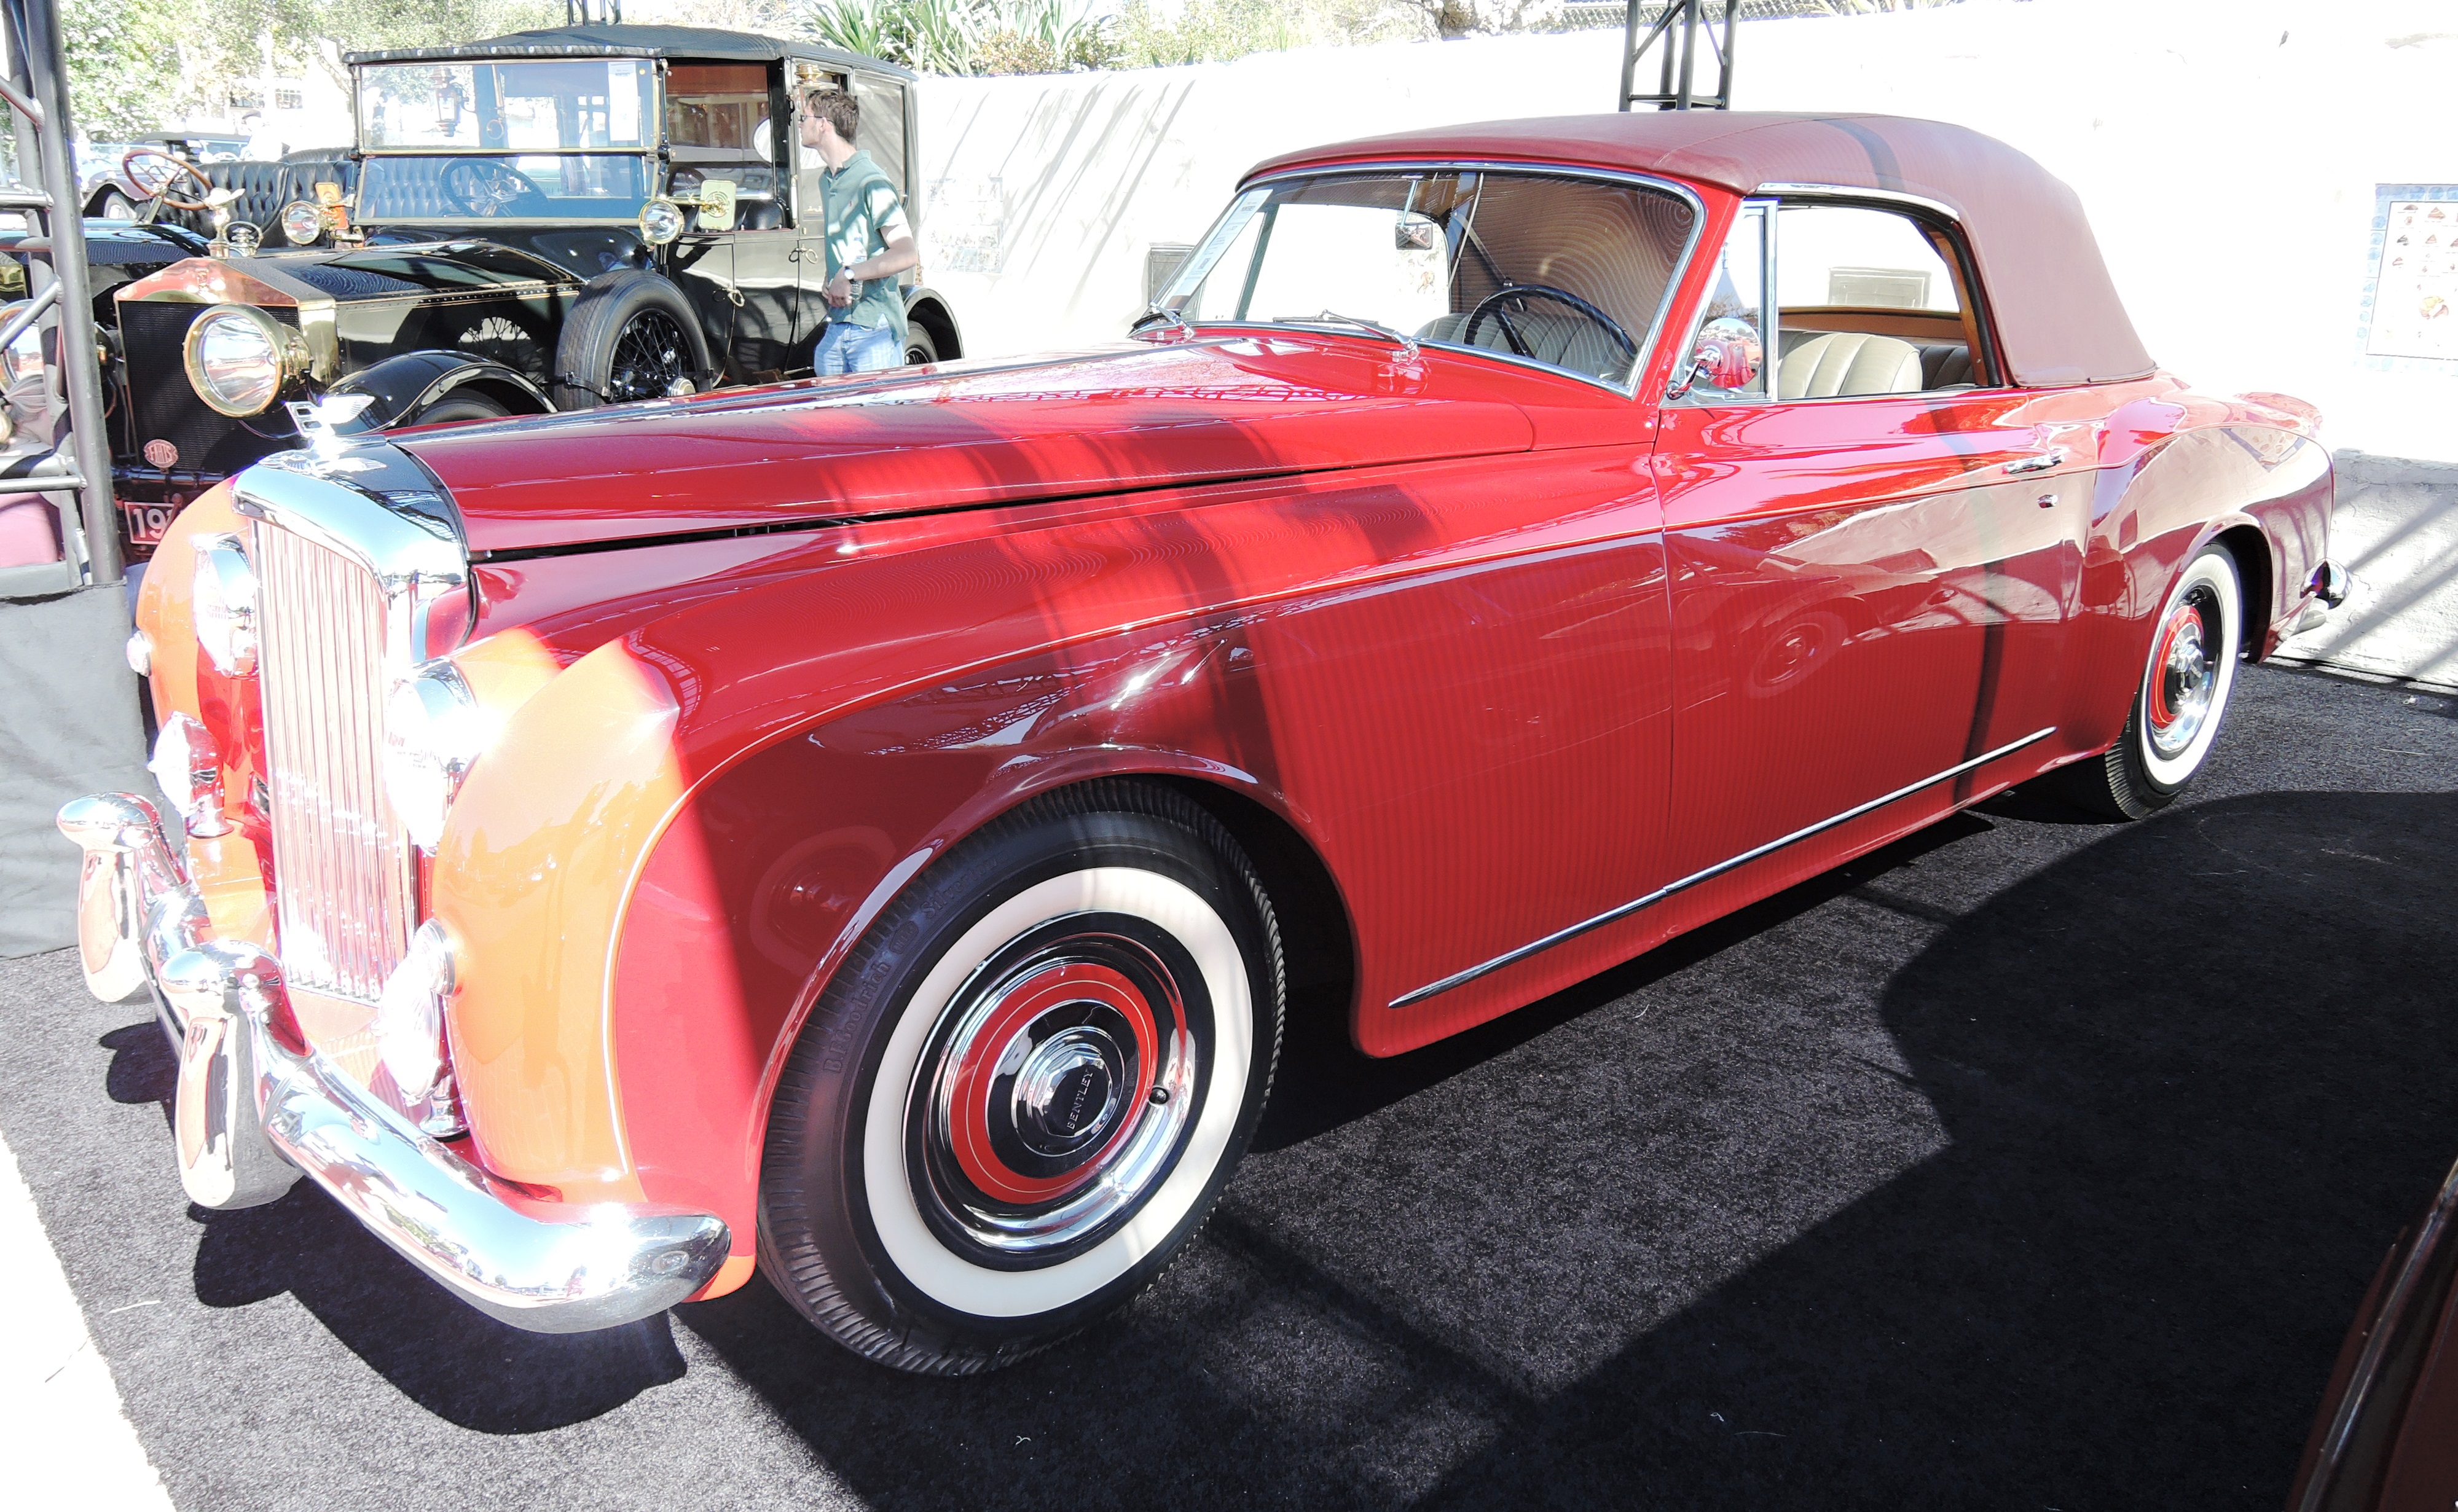 red 1956 Bentley S1 Continental Drophead Coupe at RM Sotheby's - classic car auctions